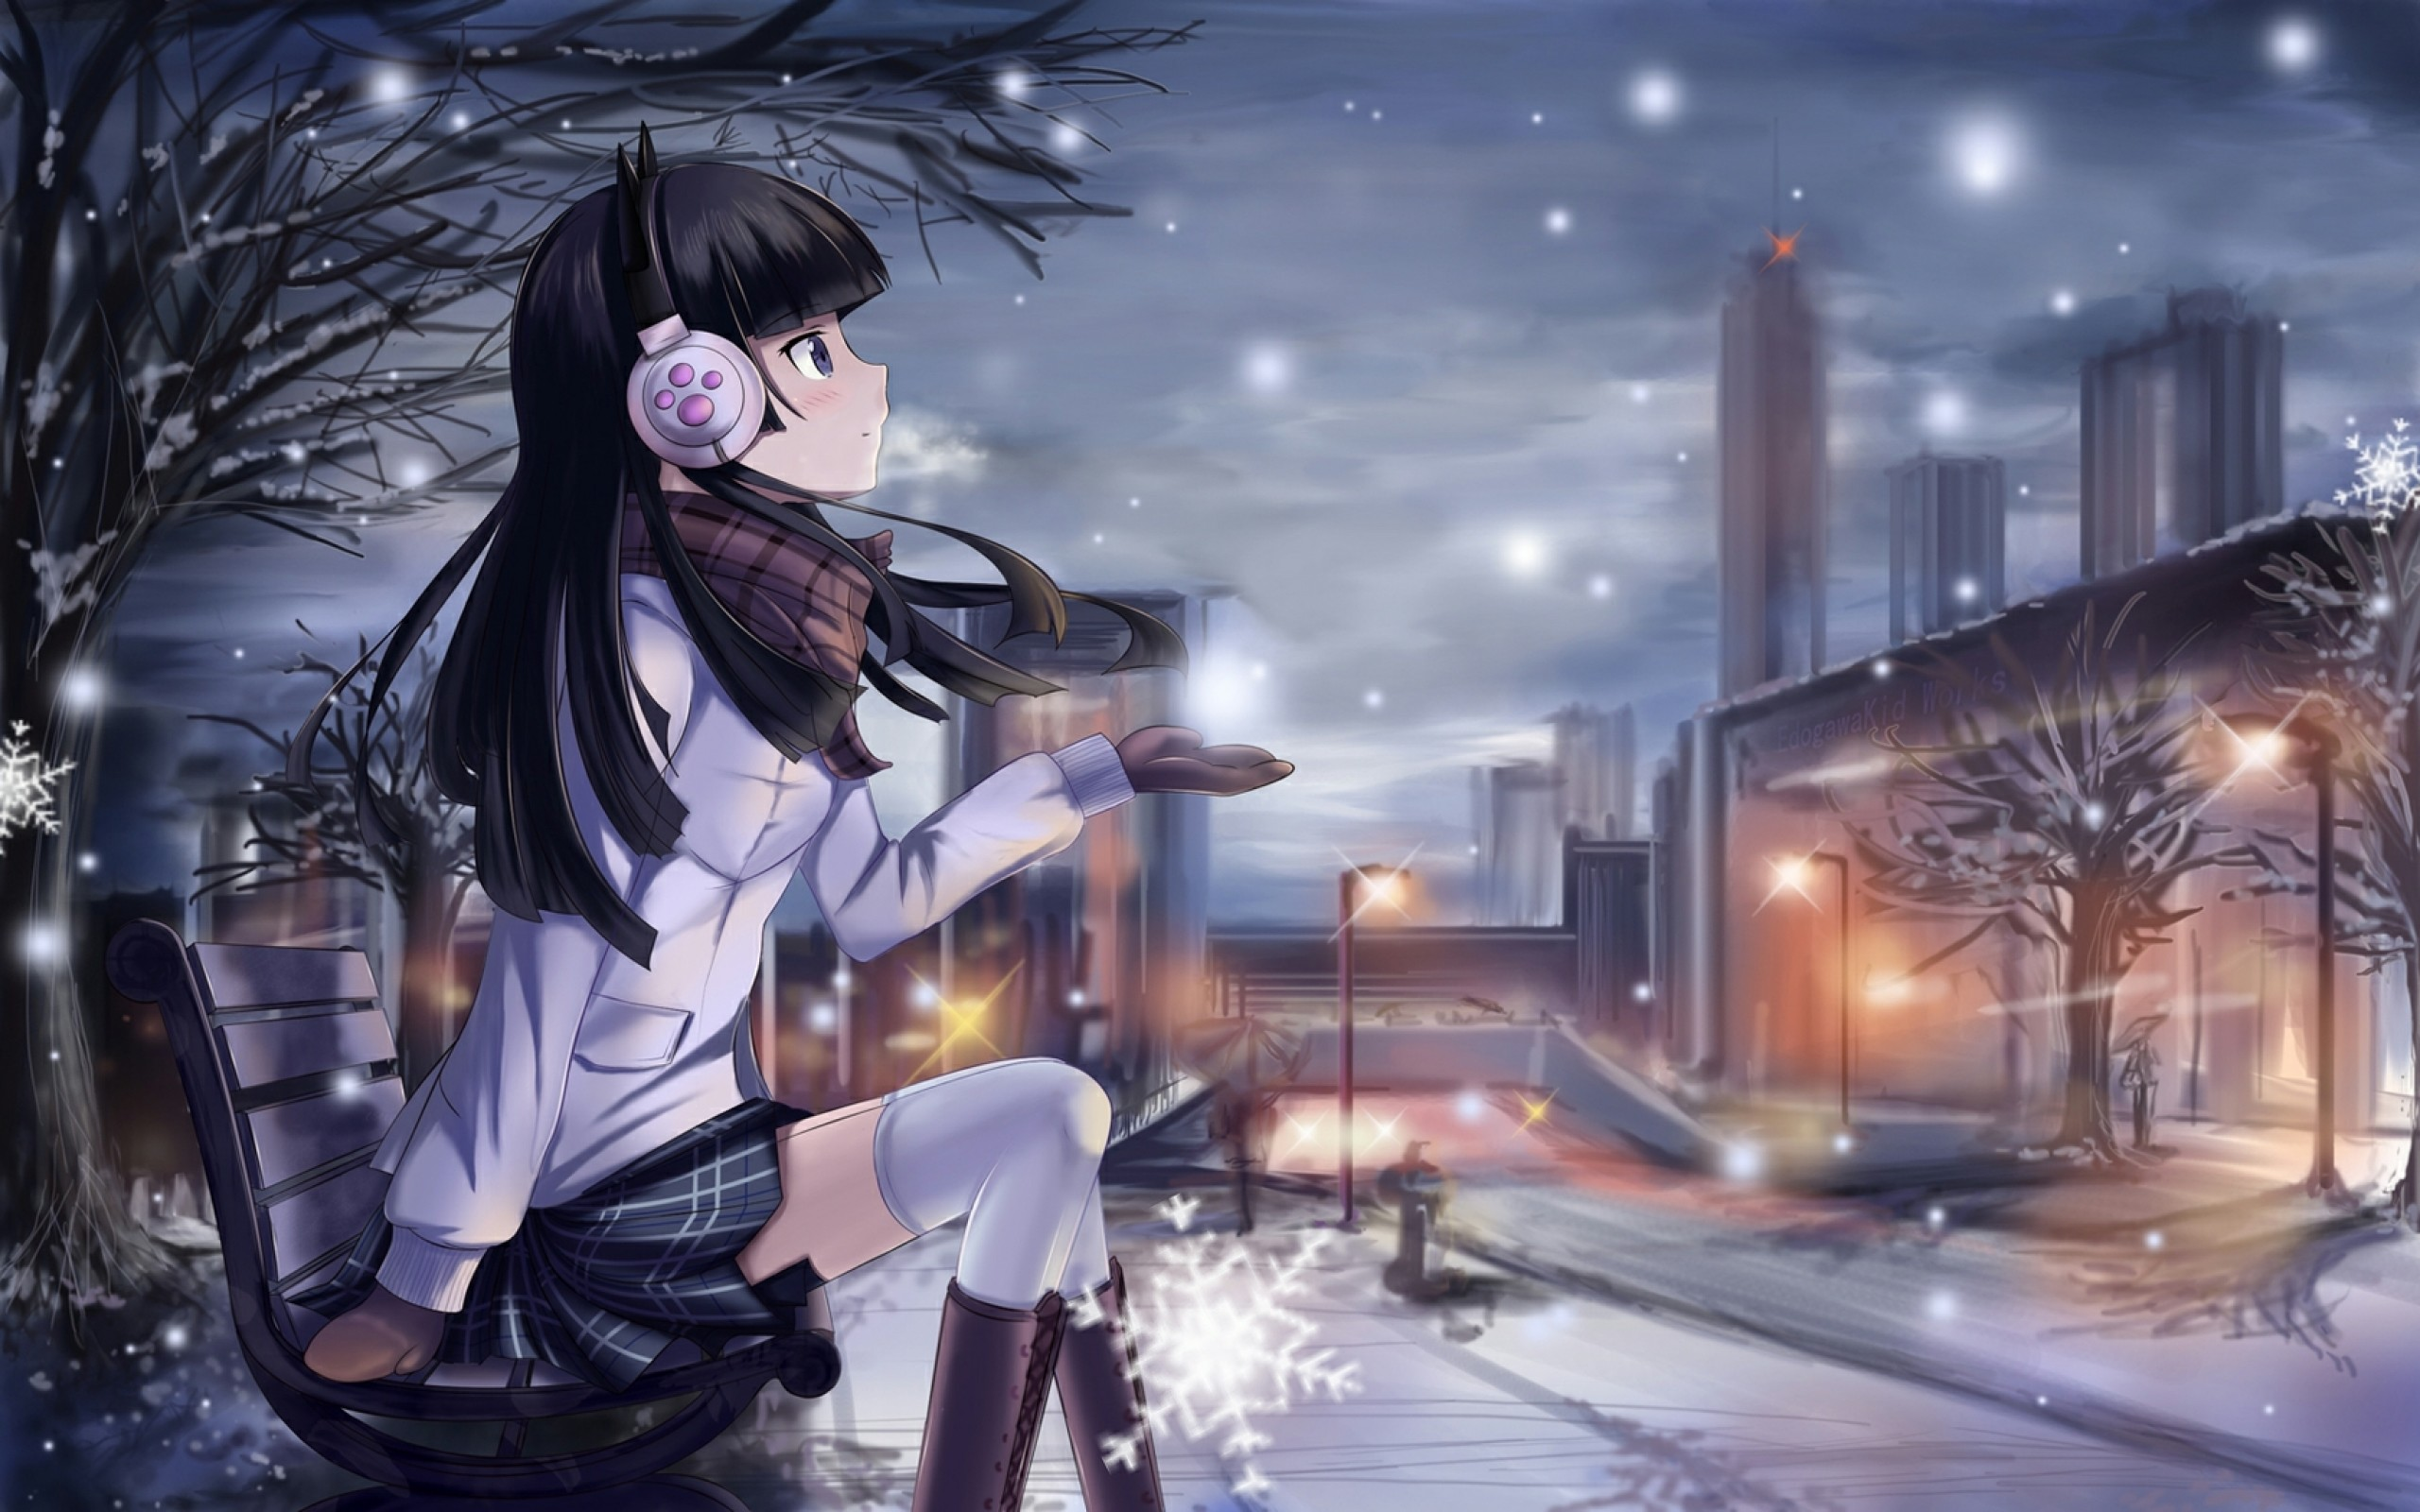 2560x1600 Kawaii Anime images Beautiful girl (✿◠‿◠) HD wallpaper and background photos